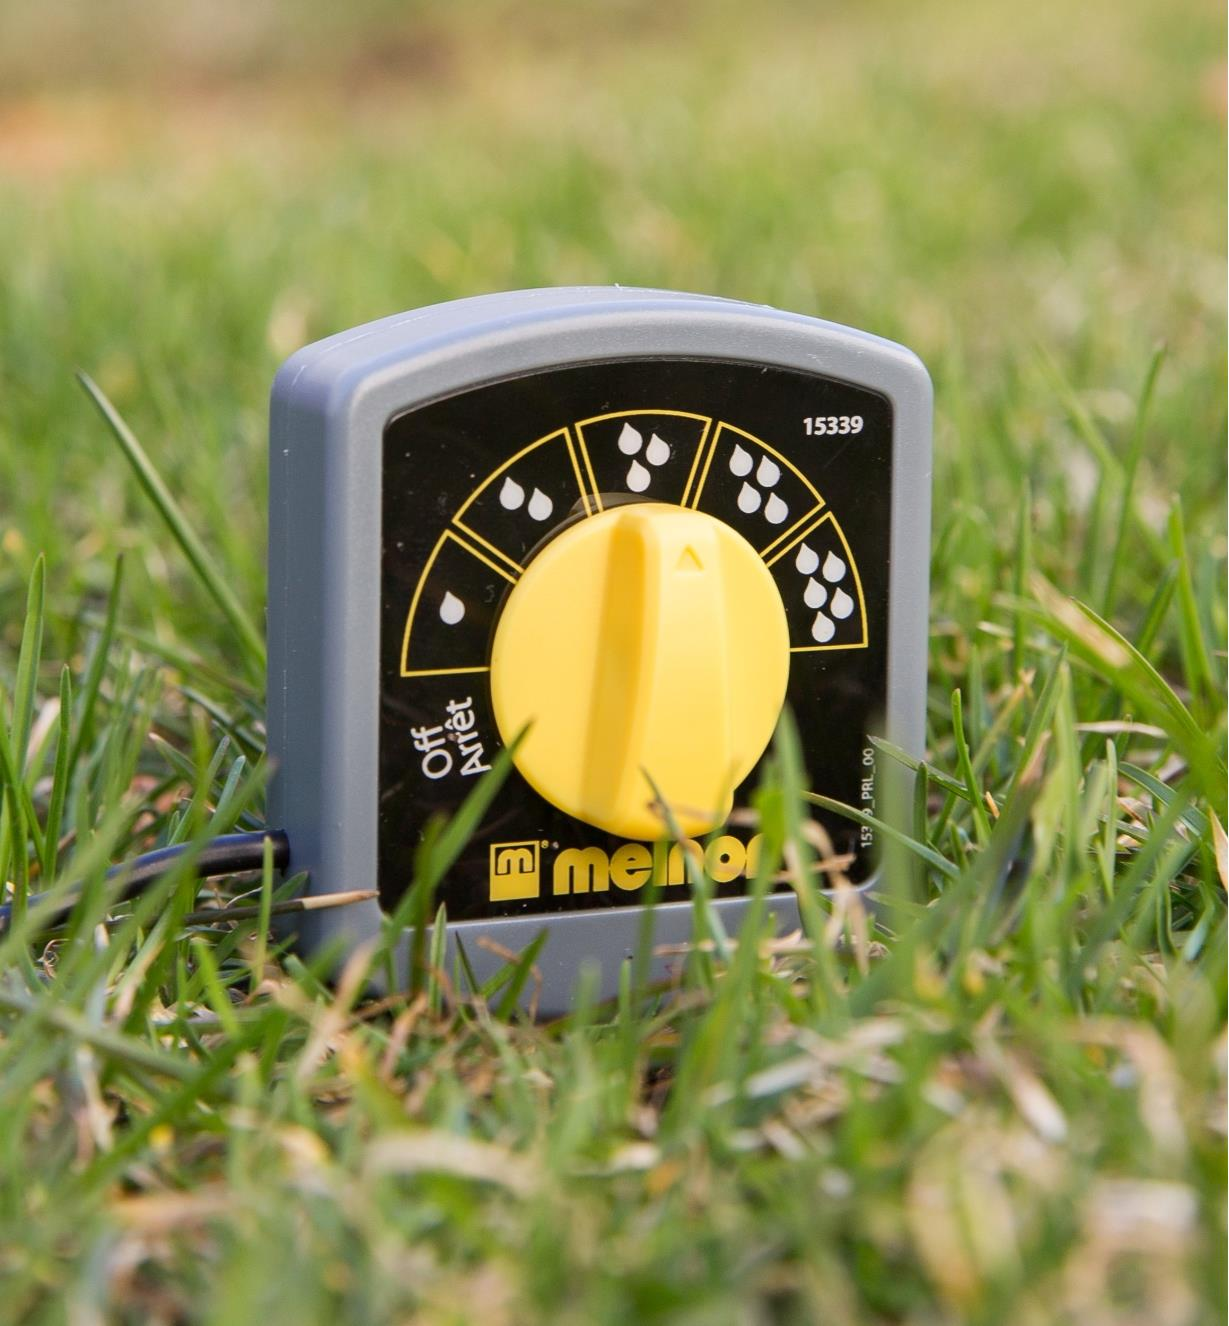 Electronic Water Timer Moisture Sensor inserted in a lawn